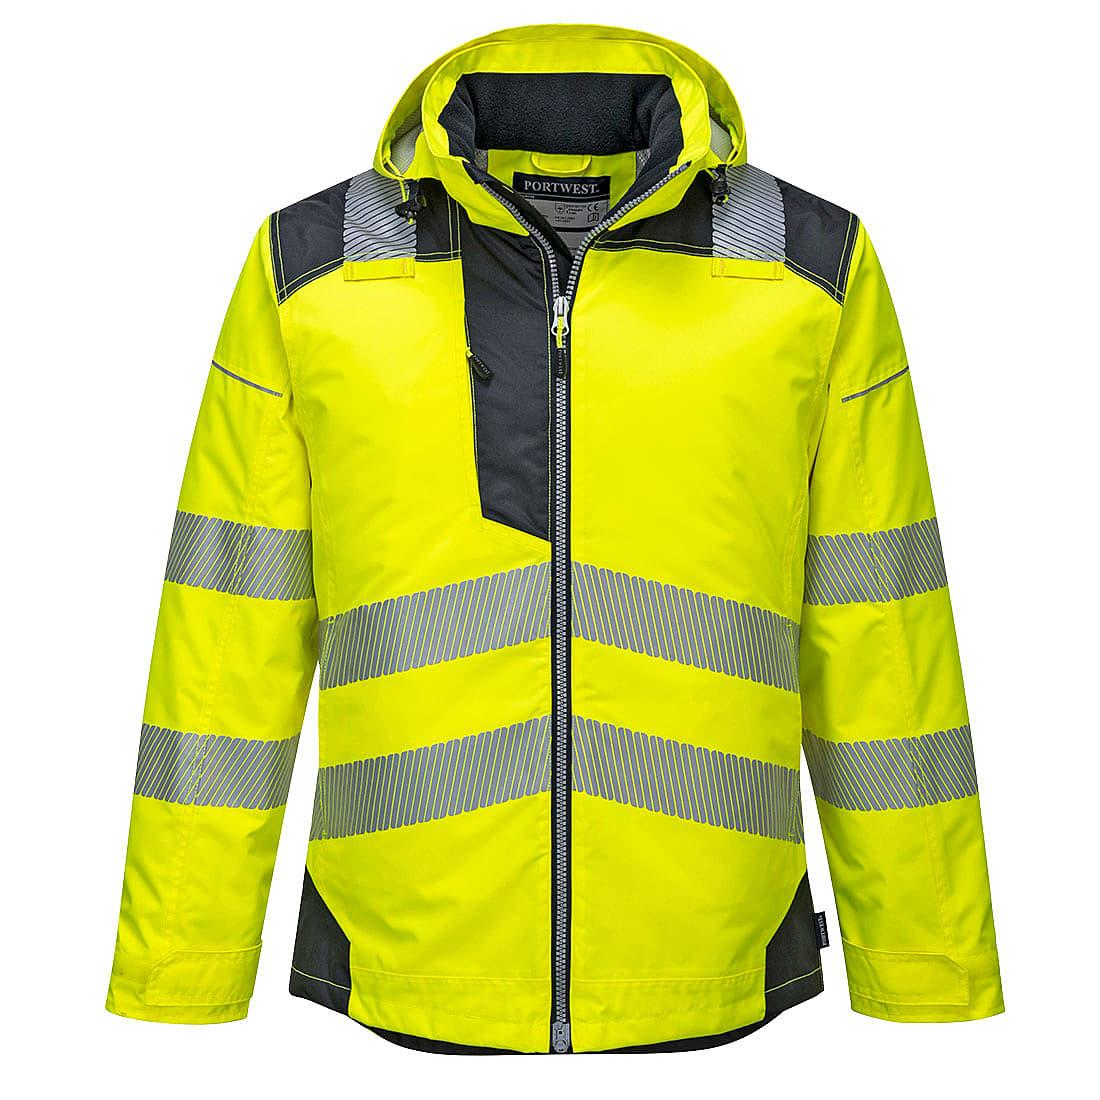 Portwest PW3 Hi-Viz Winter Jacket in Yellow / Black (Product Code: T400)